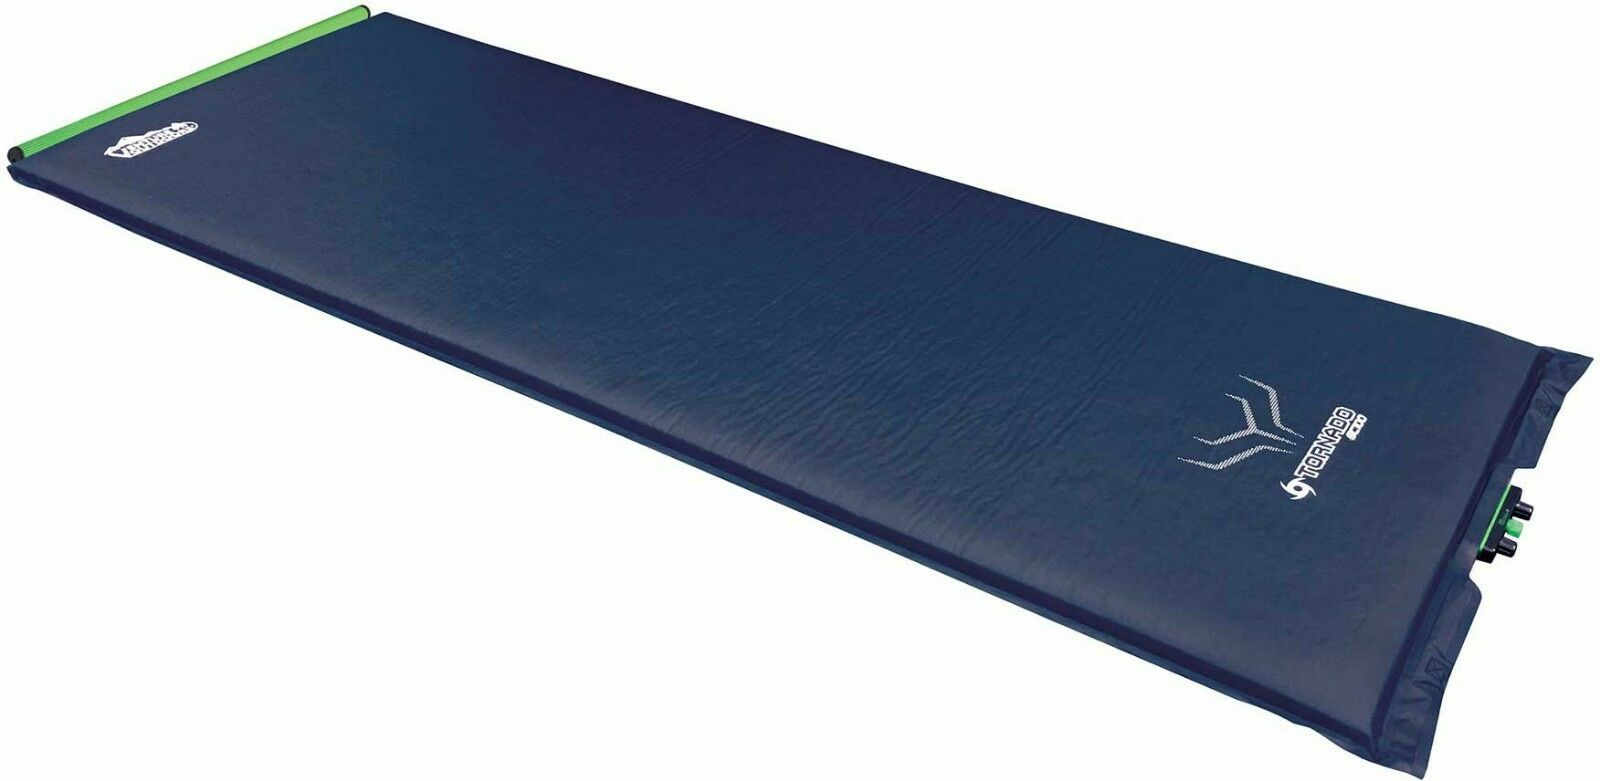 New Venture  Outdoors Self-Inflating Camping Mat Tornado Tech 25x78x2  be in great demand